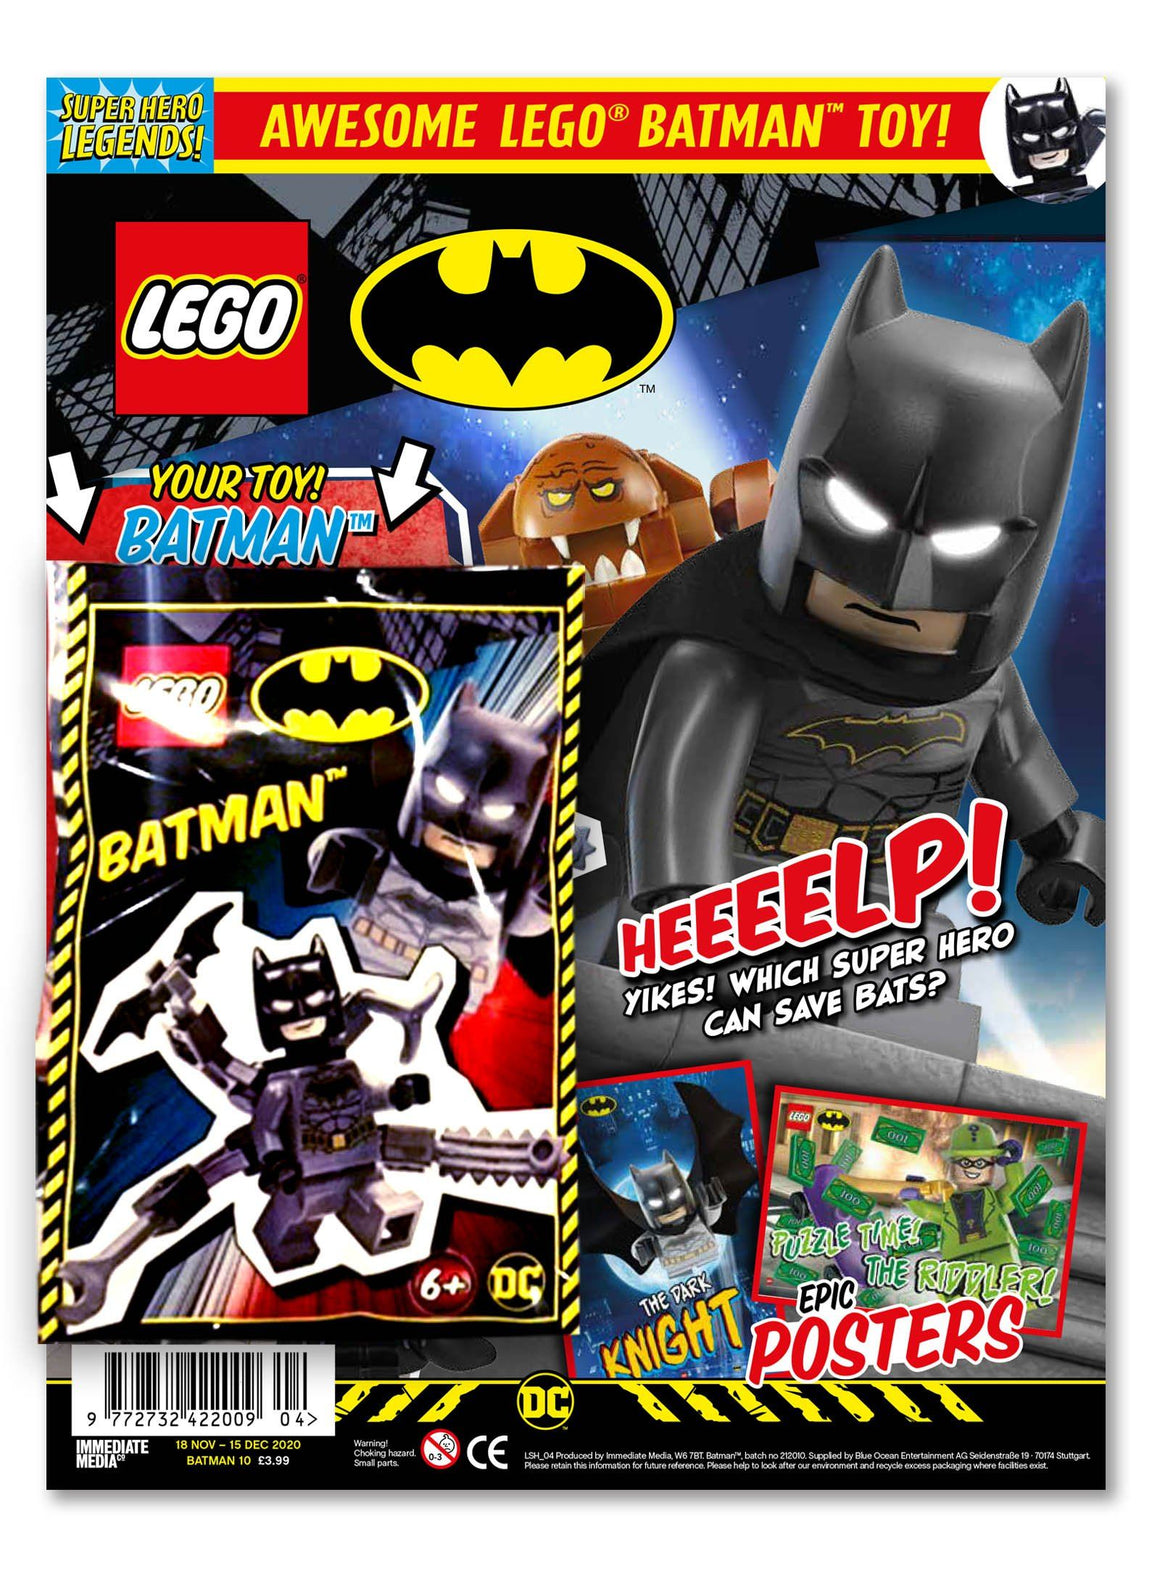 LEGO Superhero Legends Issue 4 - Batman Magazine 5 Minute Fun Shop